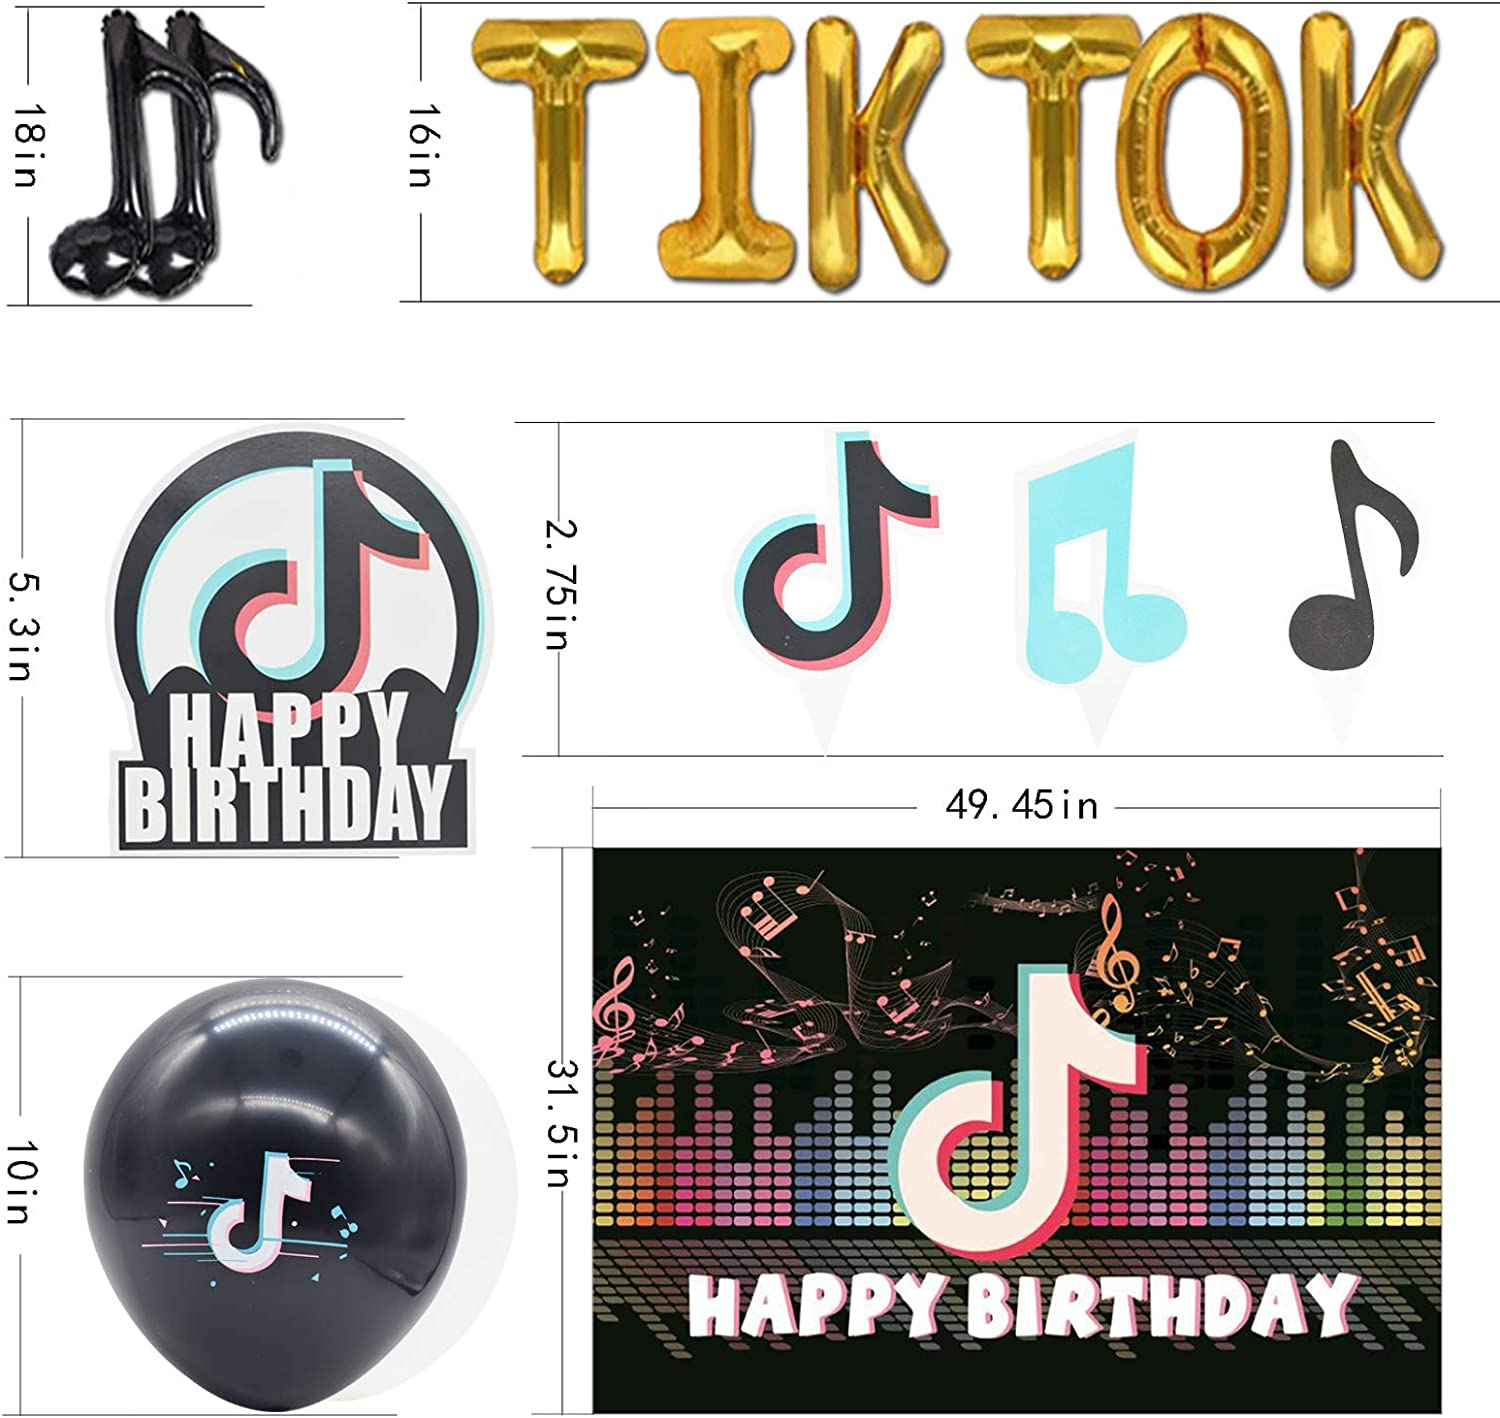 paper towel/×16 fork/×16 can accommodate 16 people background cloth/×1 banner/×15 knife/×16 paper cup/×16 190 Pcs TIKTOK party tableware spoon/×1 aluminum foil letter balloon/×8 including table cloth/×1